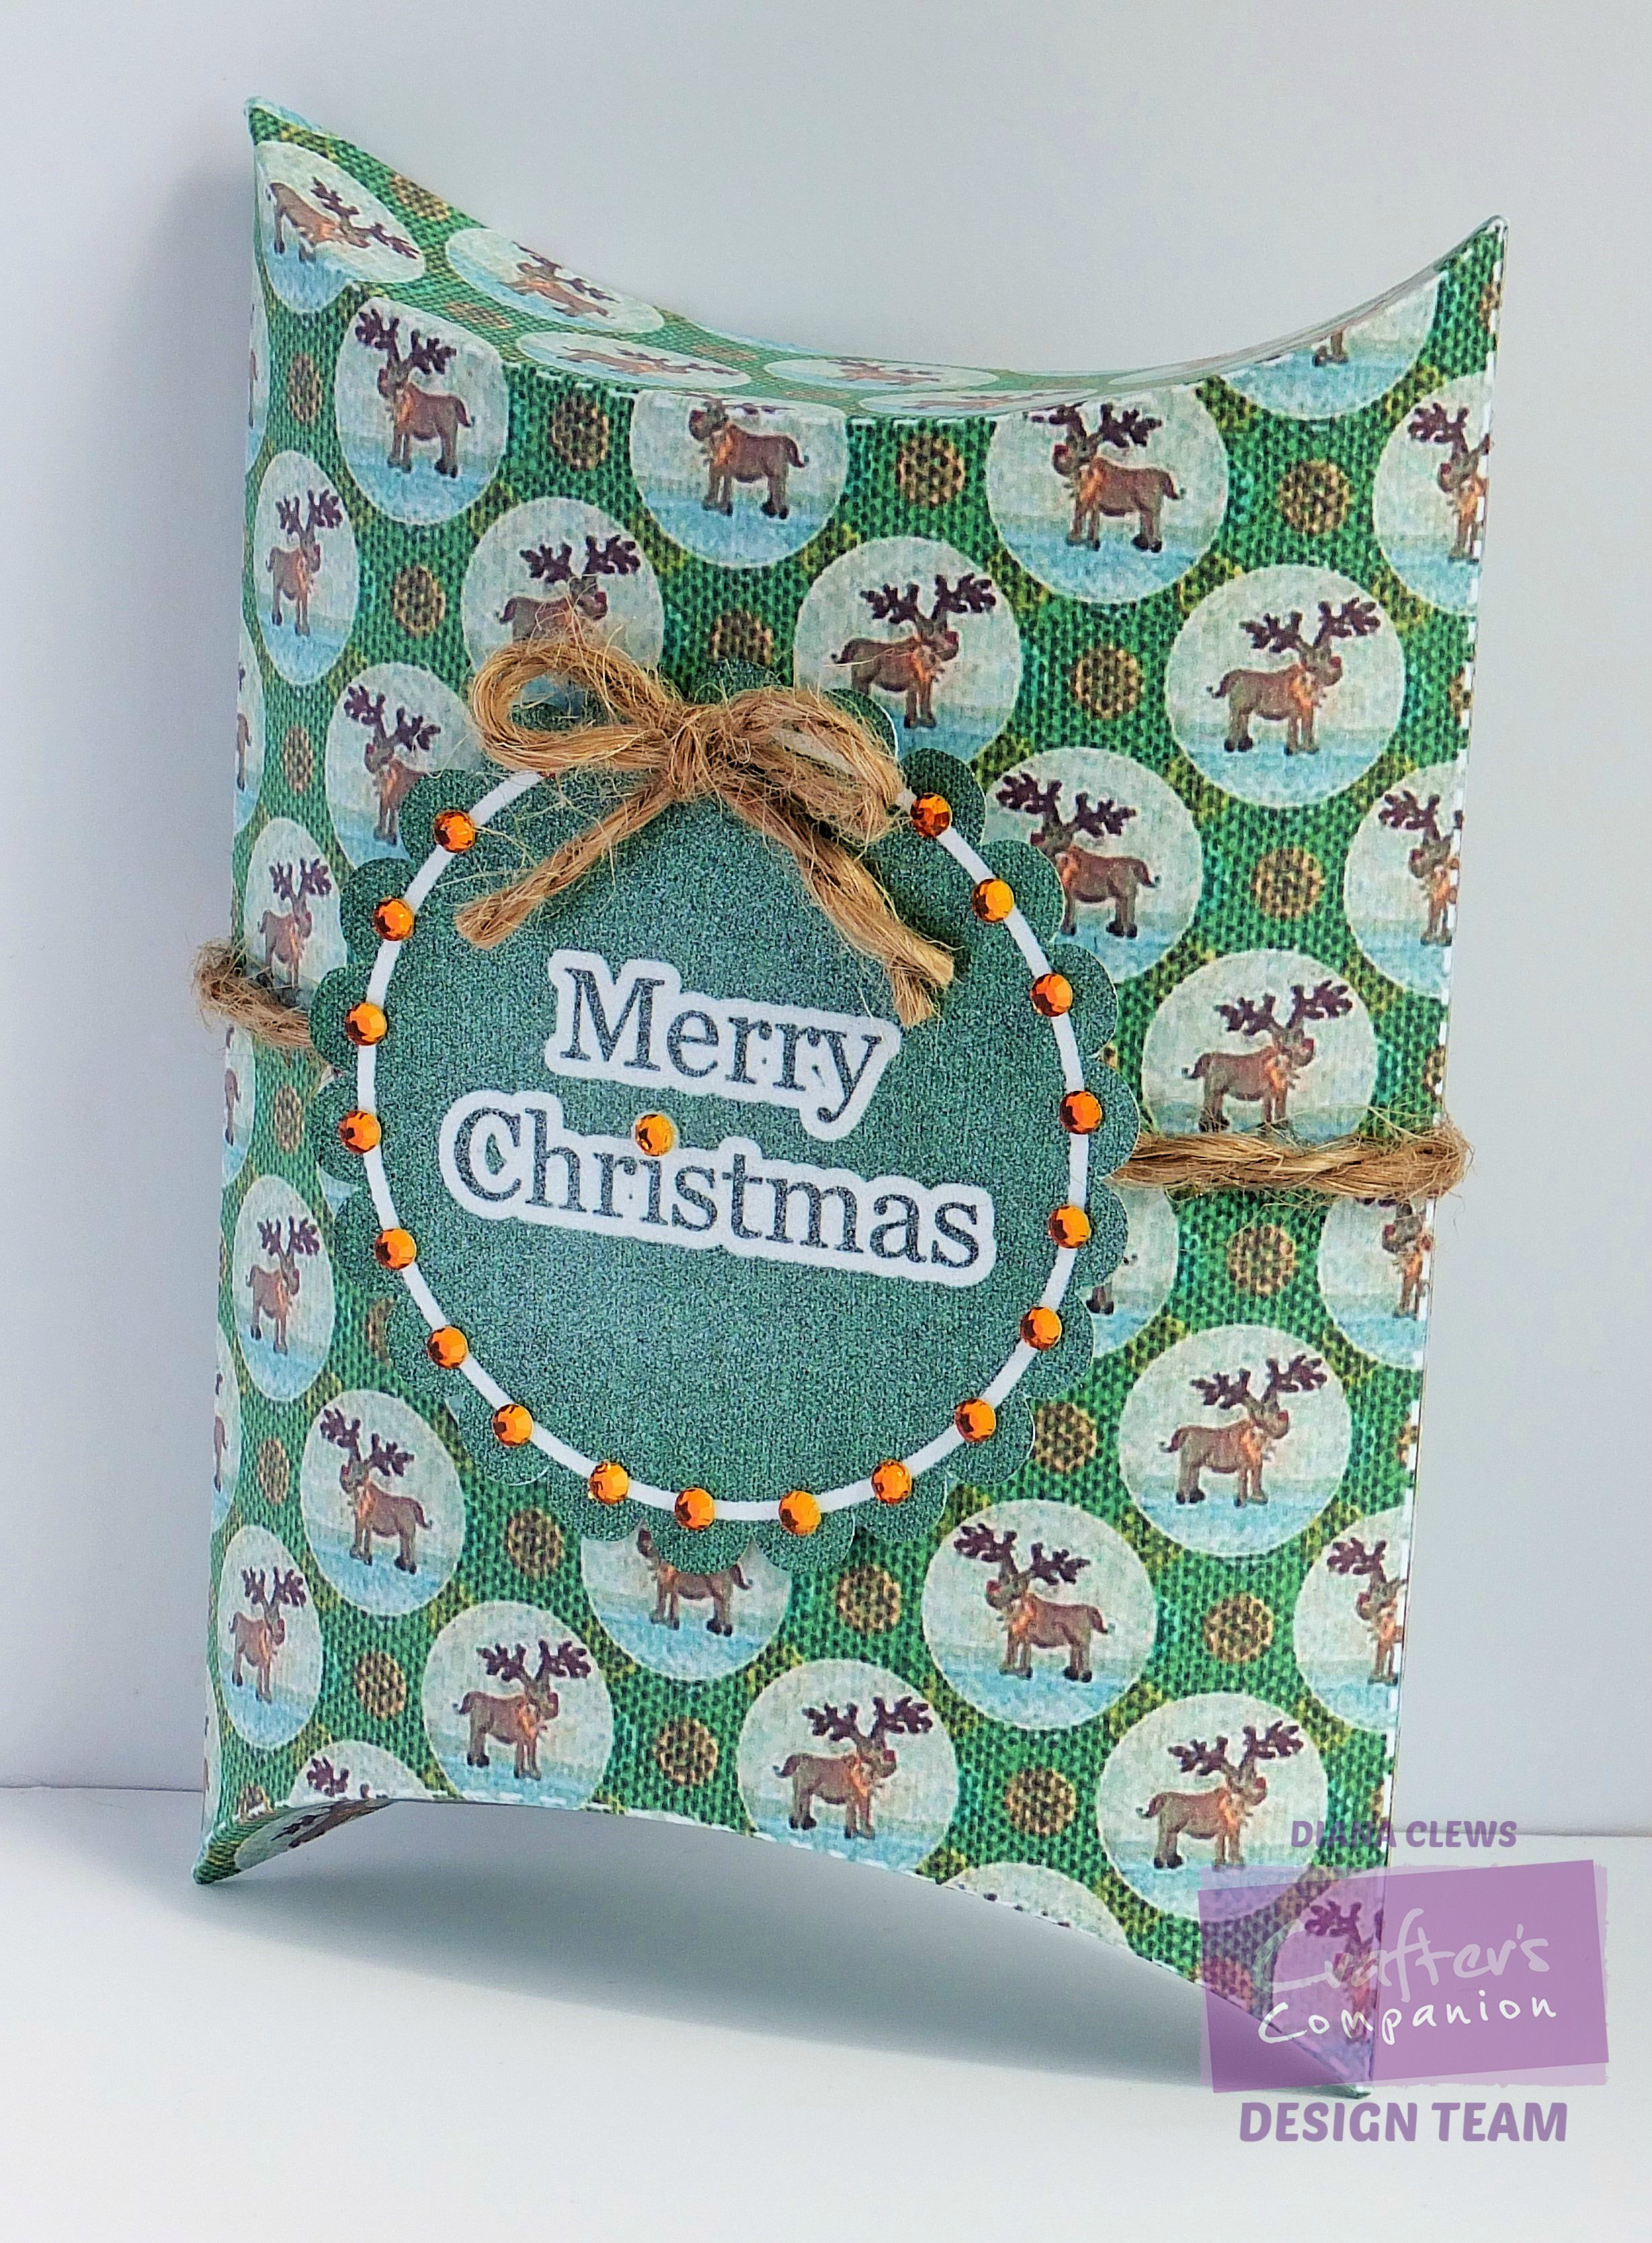 Diana clews table favour pillow box romany christmas cd u design